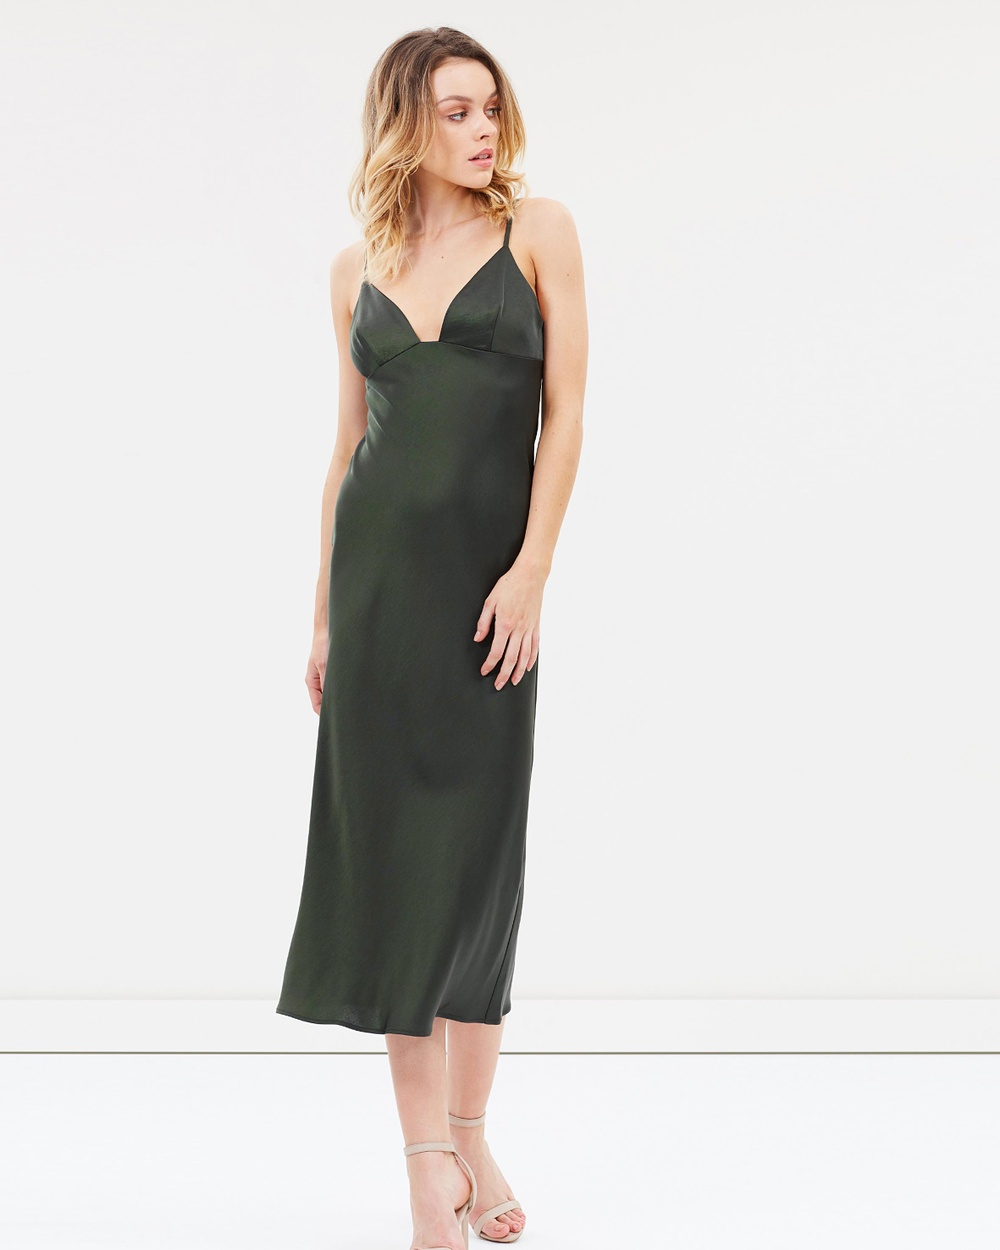 Shona Joy Bias Slip Midi Dress Dresses Khaki Bias Slip Midi Dress